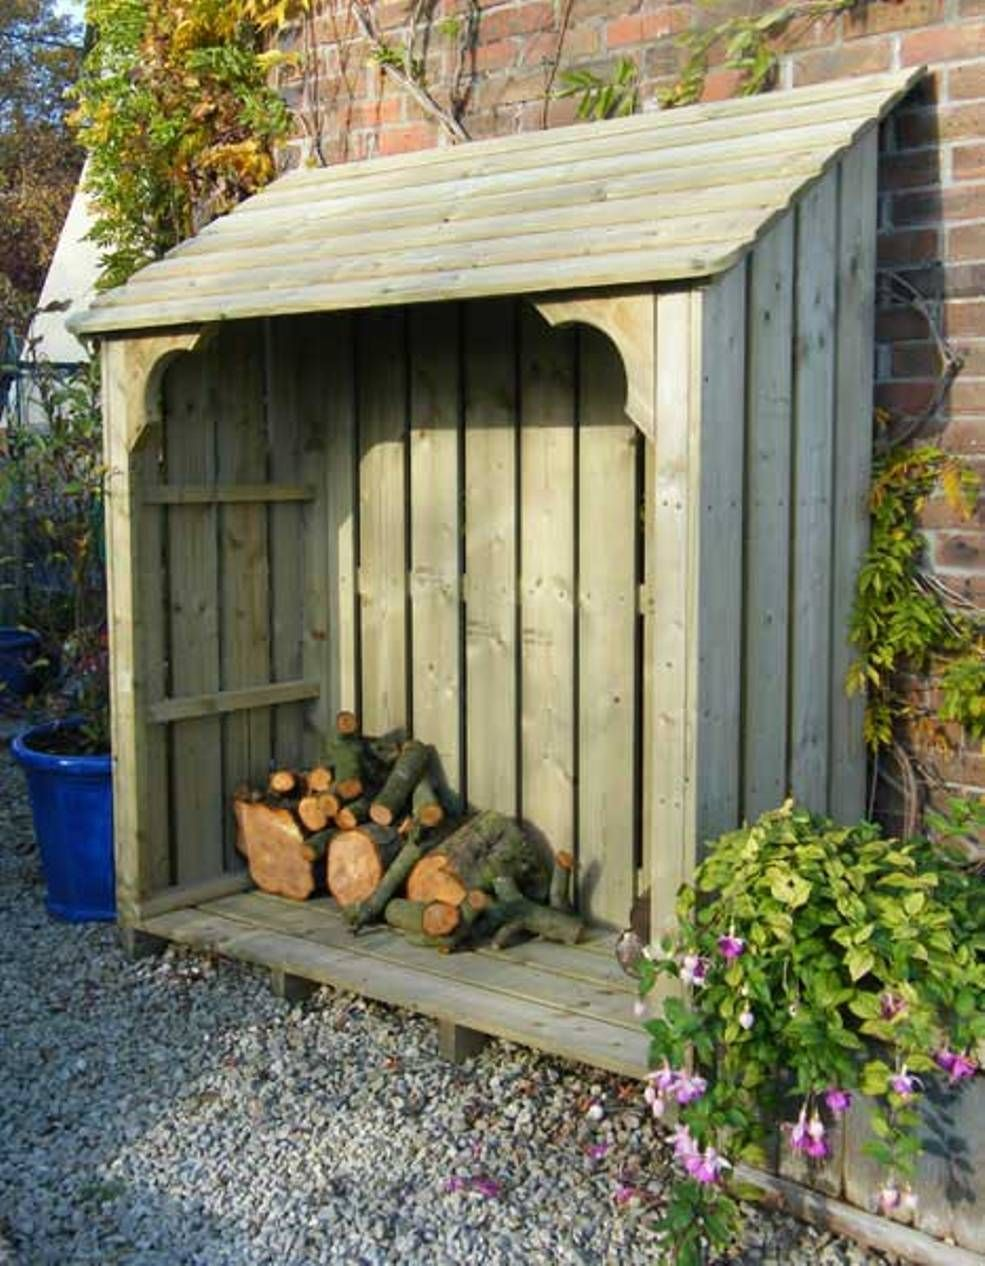 Exterior Remodeling Outdoor Firewood Rack Wooden Firewood - Creative firewood storage ideas turning wood beautiful yard decorations